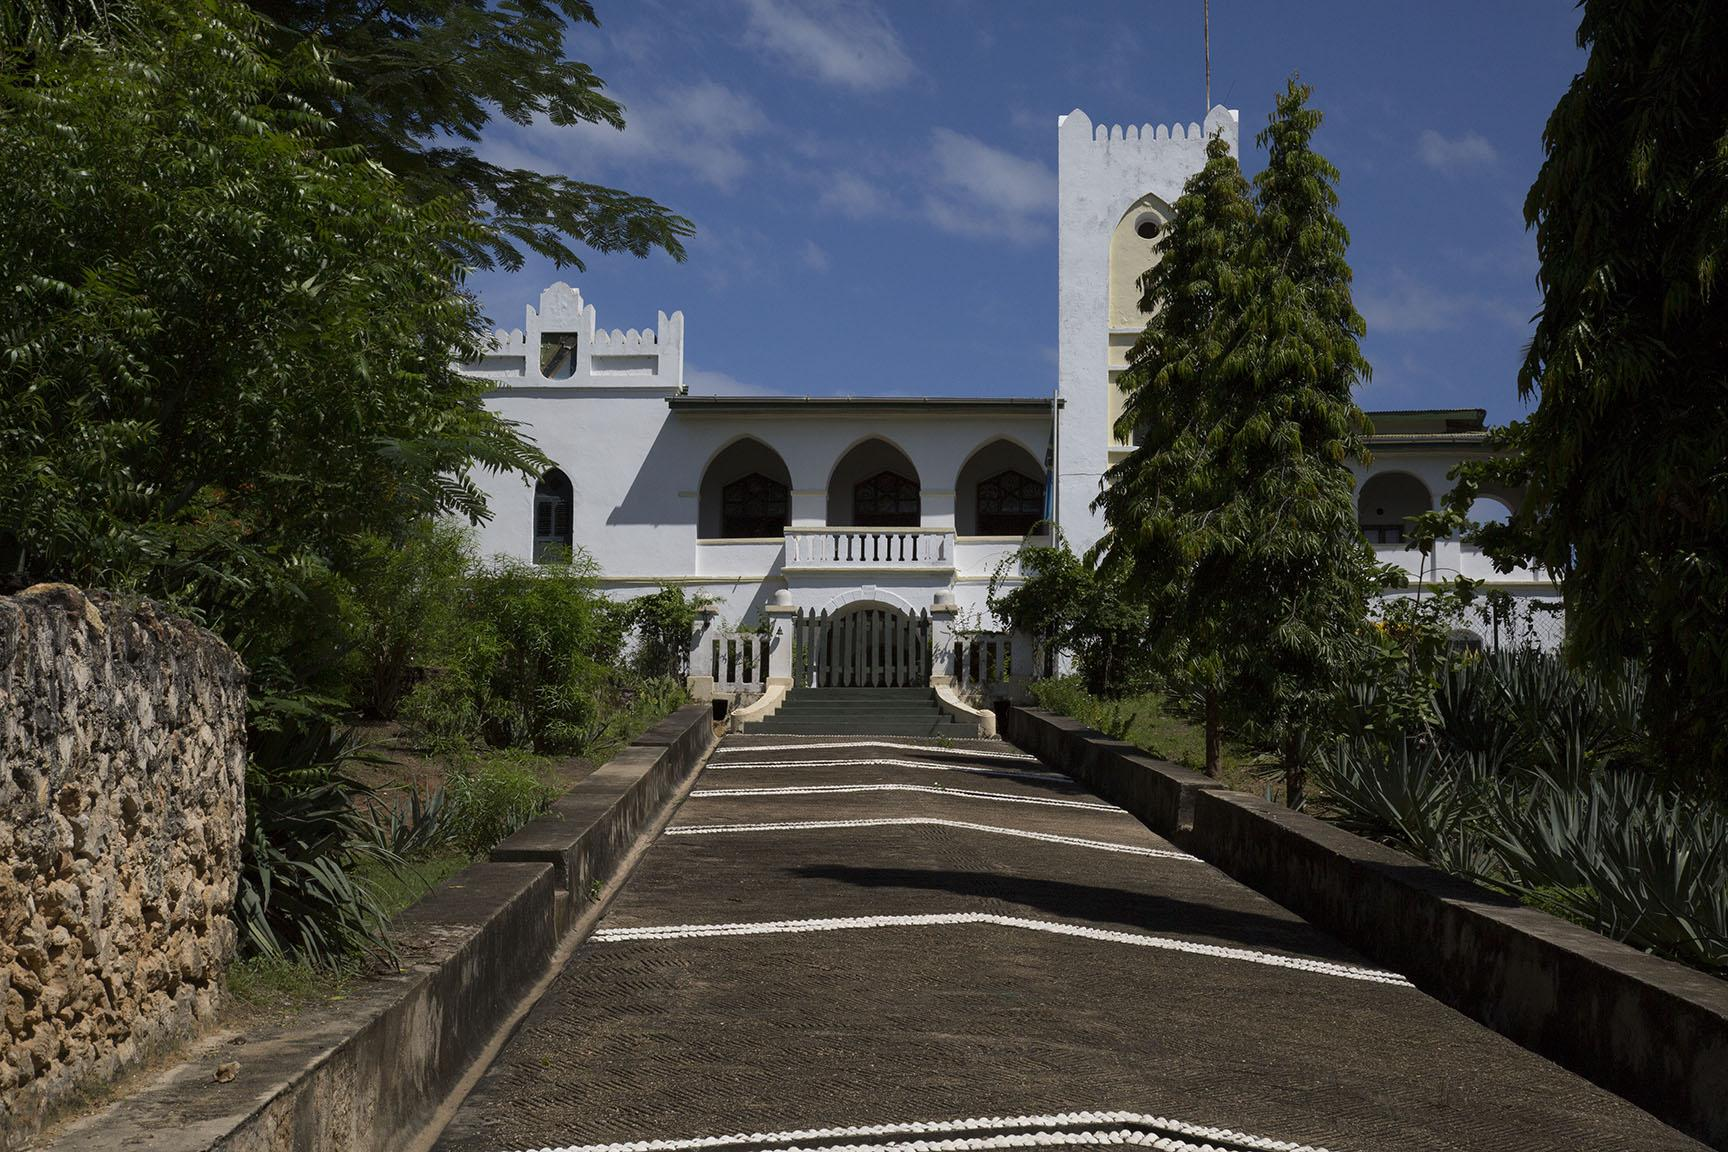 TANZANIA-ARCHITECTURE-HISTORY-FEATURE This picture taken on April 28, 2019 shows the Old Boma Hotel which was restored by the UK charity Trade Aid, originally built by Germans to be a fortress in 1895 in Mikindani, southern Tanzania. - Mikindani was once the centre of trade in southern Tanzania. The town was under German colonial rule trade in the late 19th century before the arrival of the British at the end of WWI. (Photo by SIMON LUYENGA/AFP)